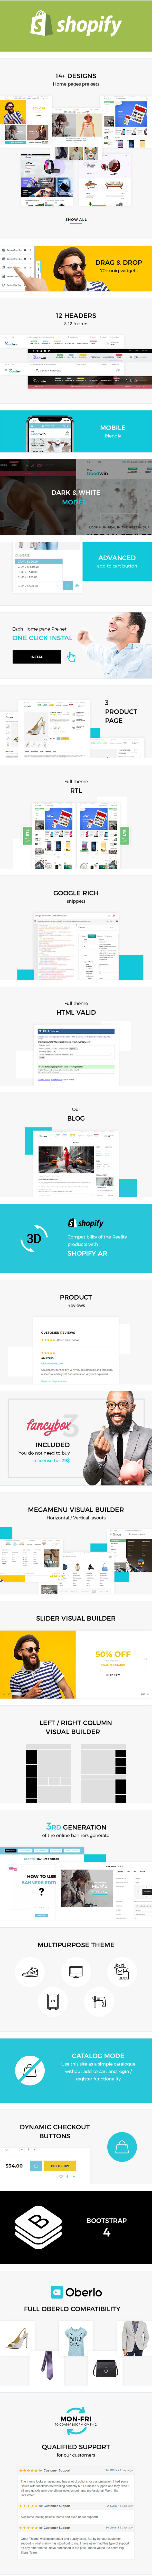 Goodwin - Shopify Theme